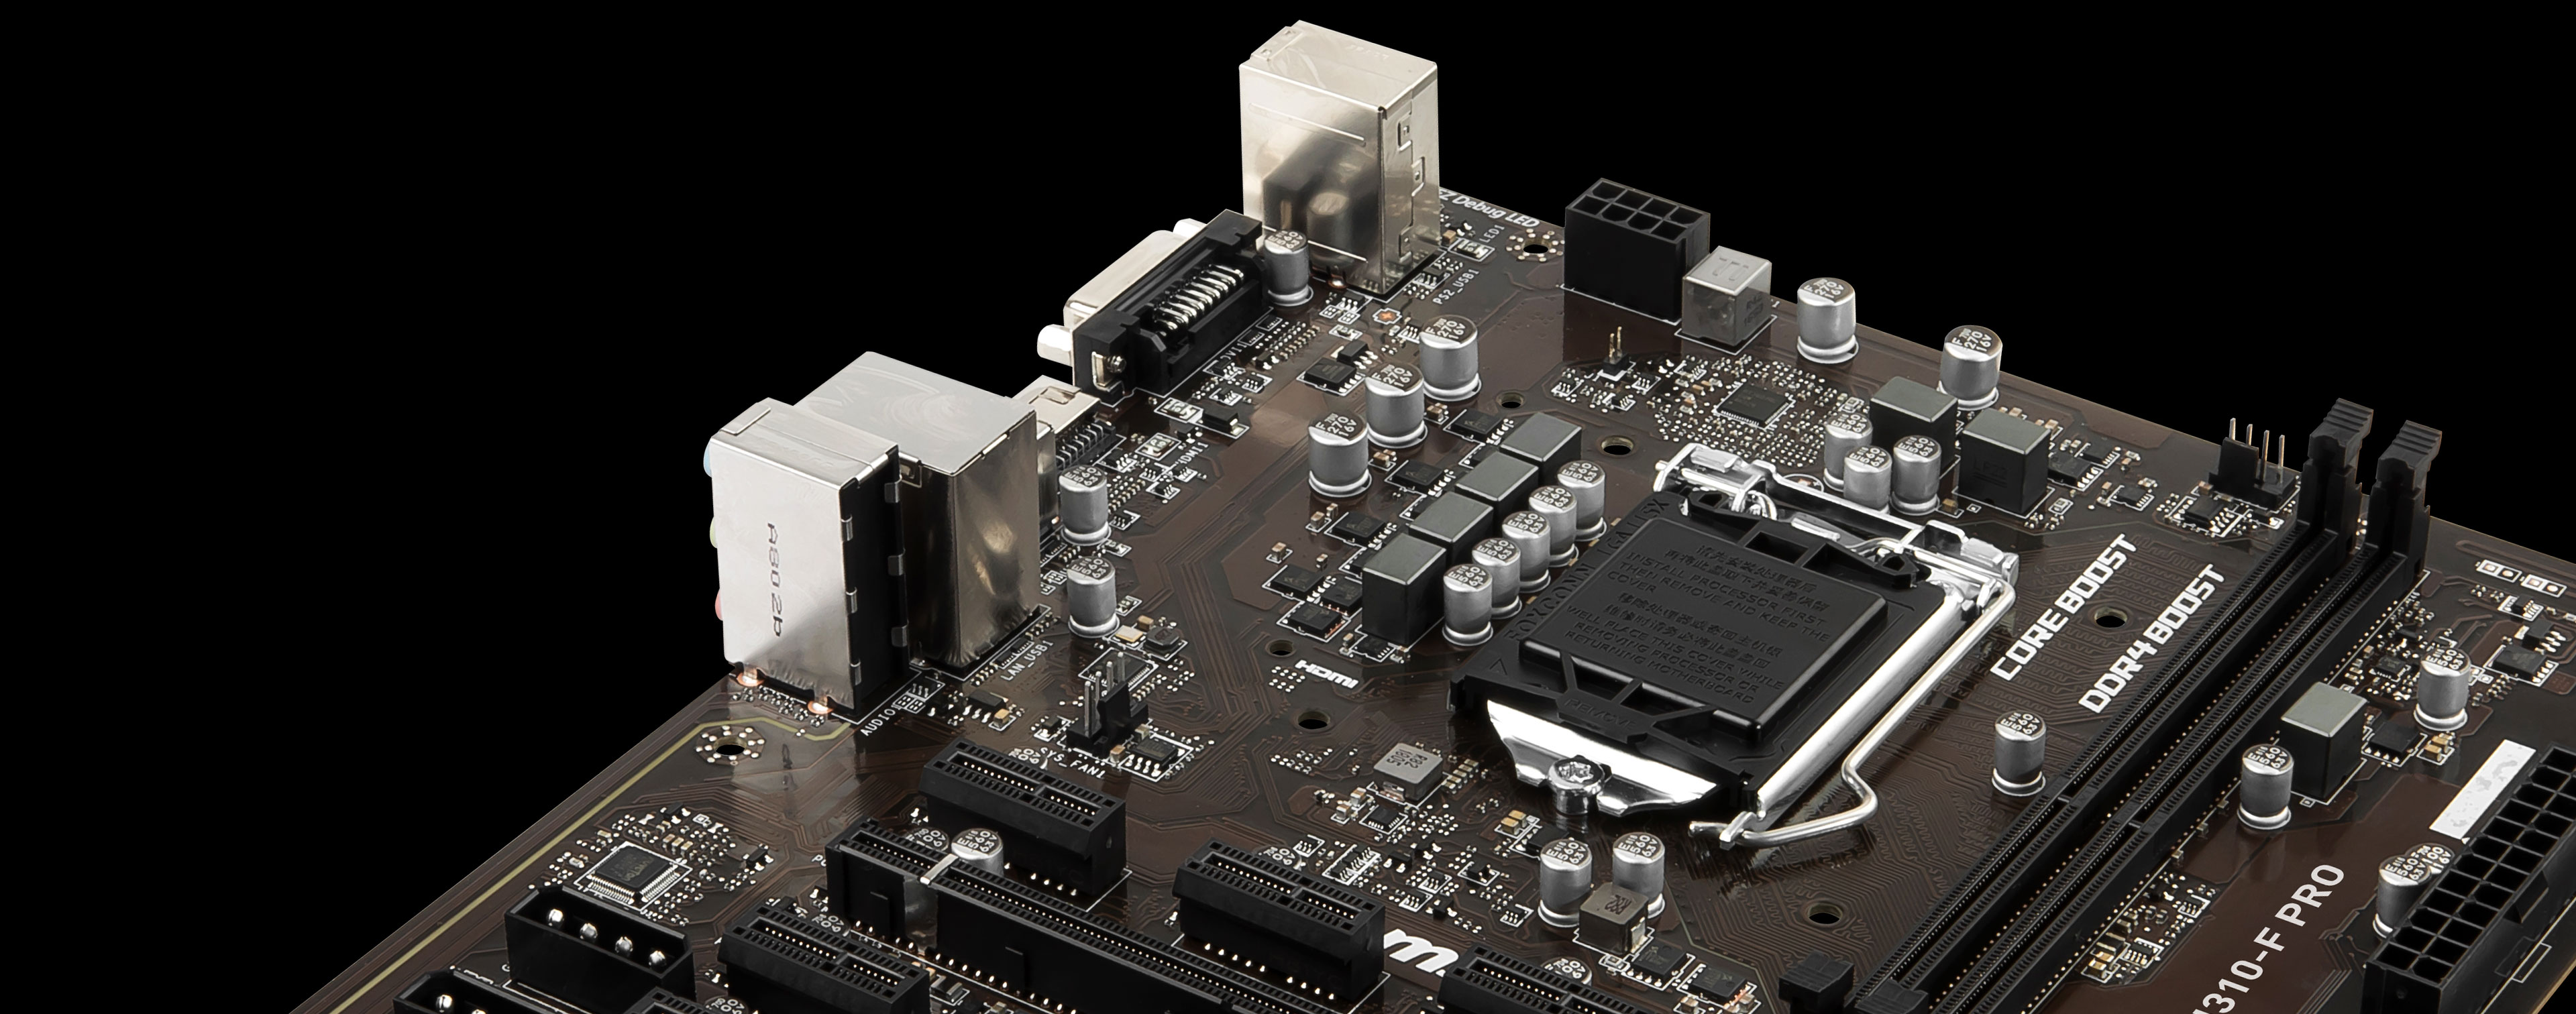 H310-F PRO | Motherboard - The world leader in motherboard design